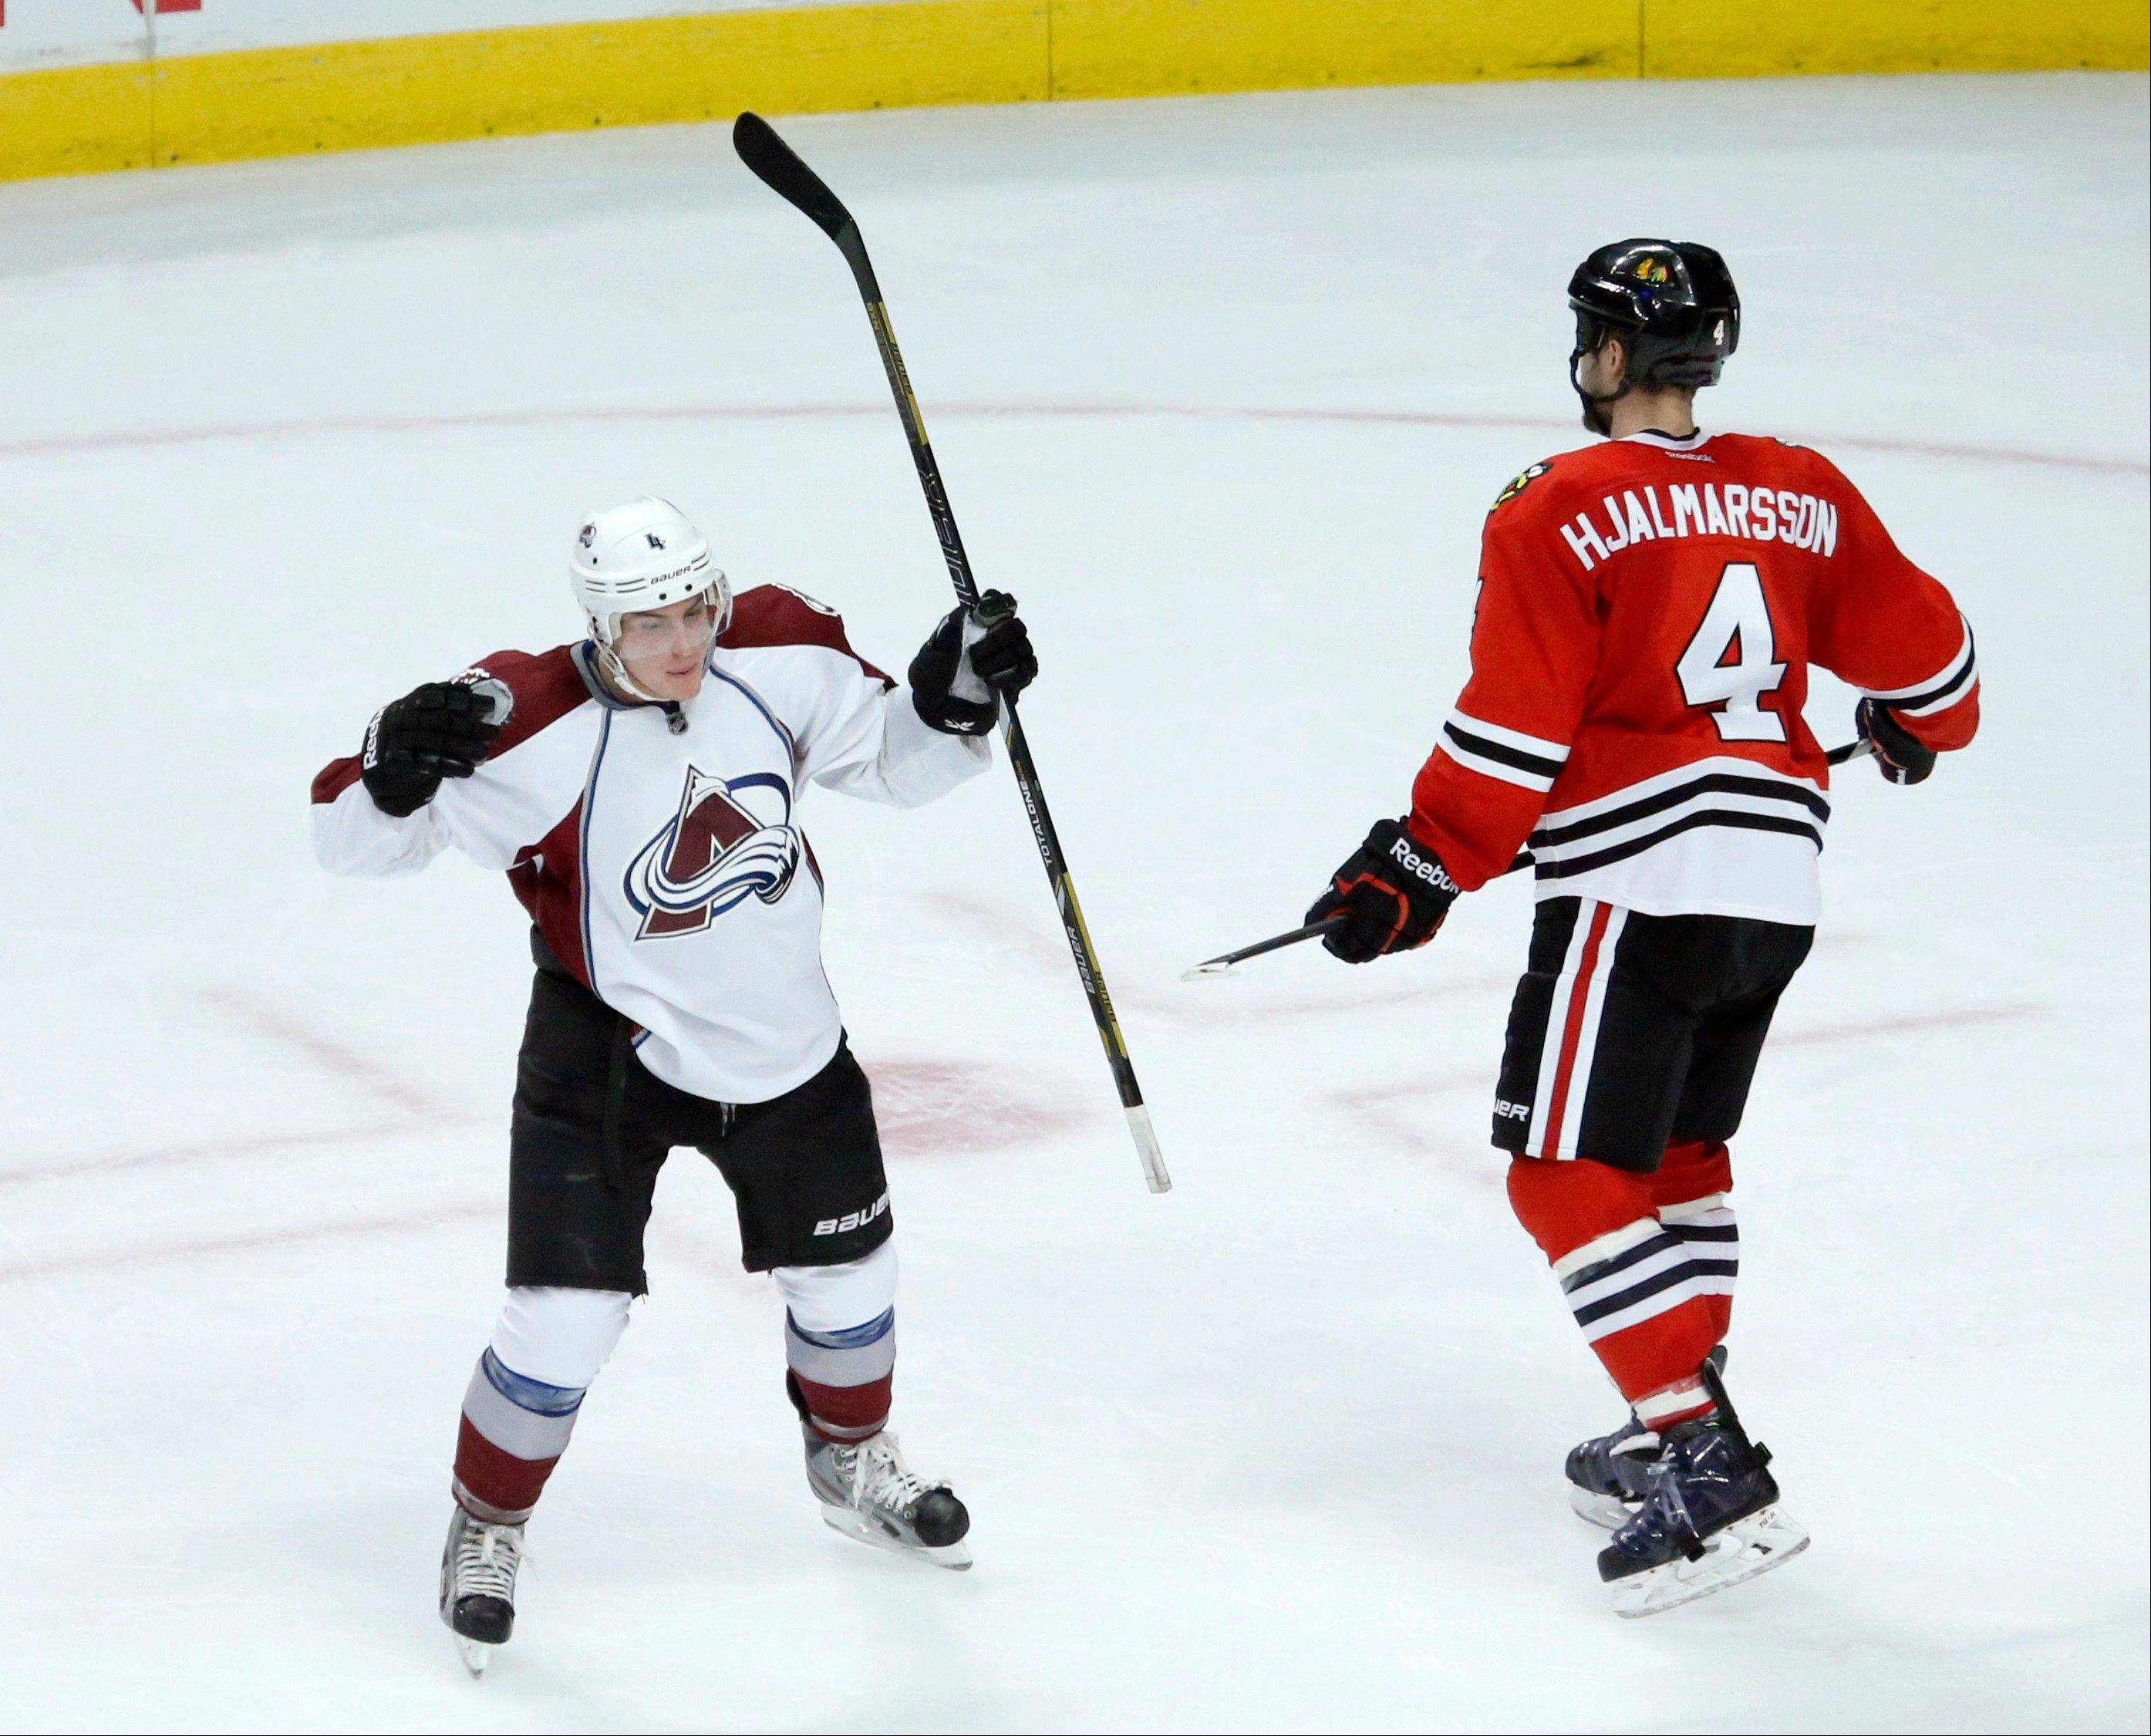 Colorado Avalanche defenseman Tyson Barrie (4) celebrates his winning goal in overtime as Chicago Blackhawks defenseman Niklas Hjalmarsson skates away in an NHL hockey game, Tuesday, Jan. 14, 2014, in Chicago. (AP Photo/Charles Rex Arbogast)